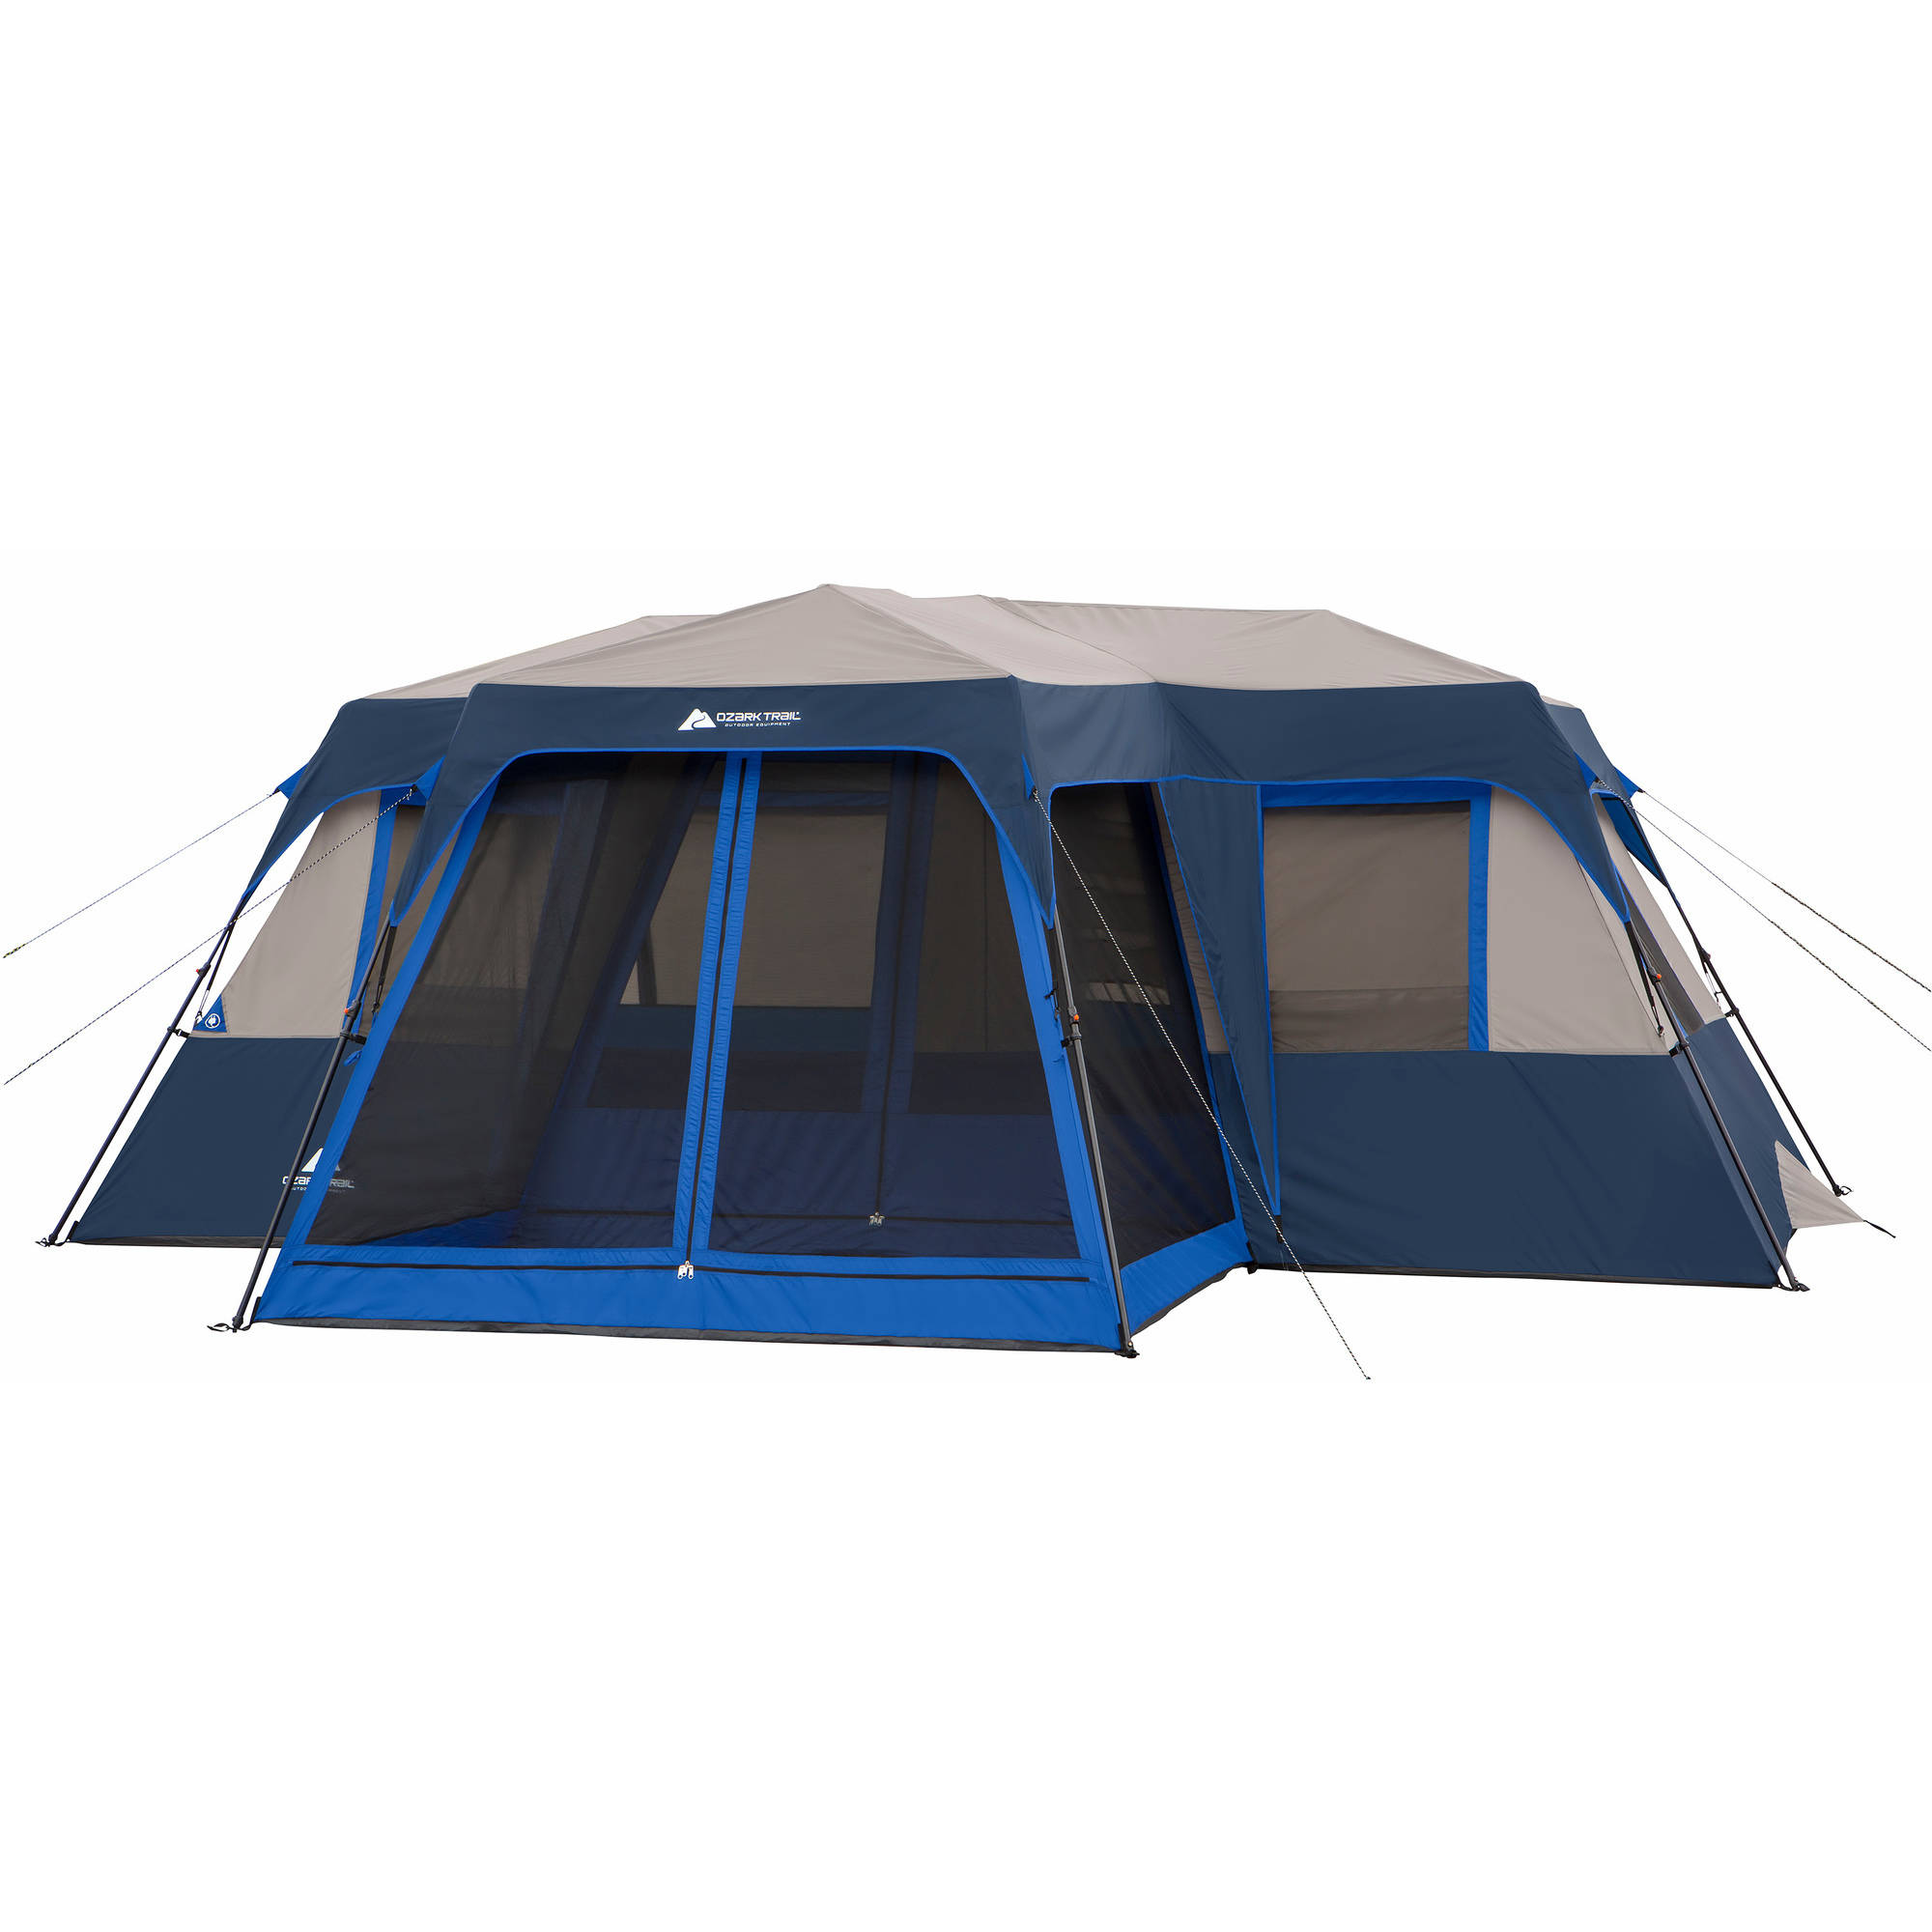 The Ozark Trail 12-Person Instant Cabin Tent ...  sc 1 st  eBay & Ozark Trail 12 Person 2 Room Instant Cabin Tent with Screen ...